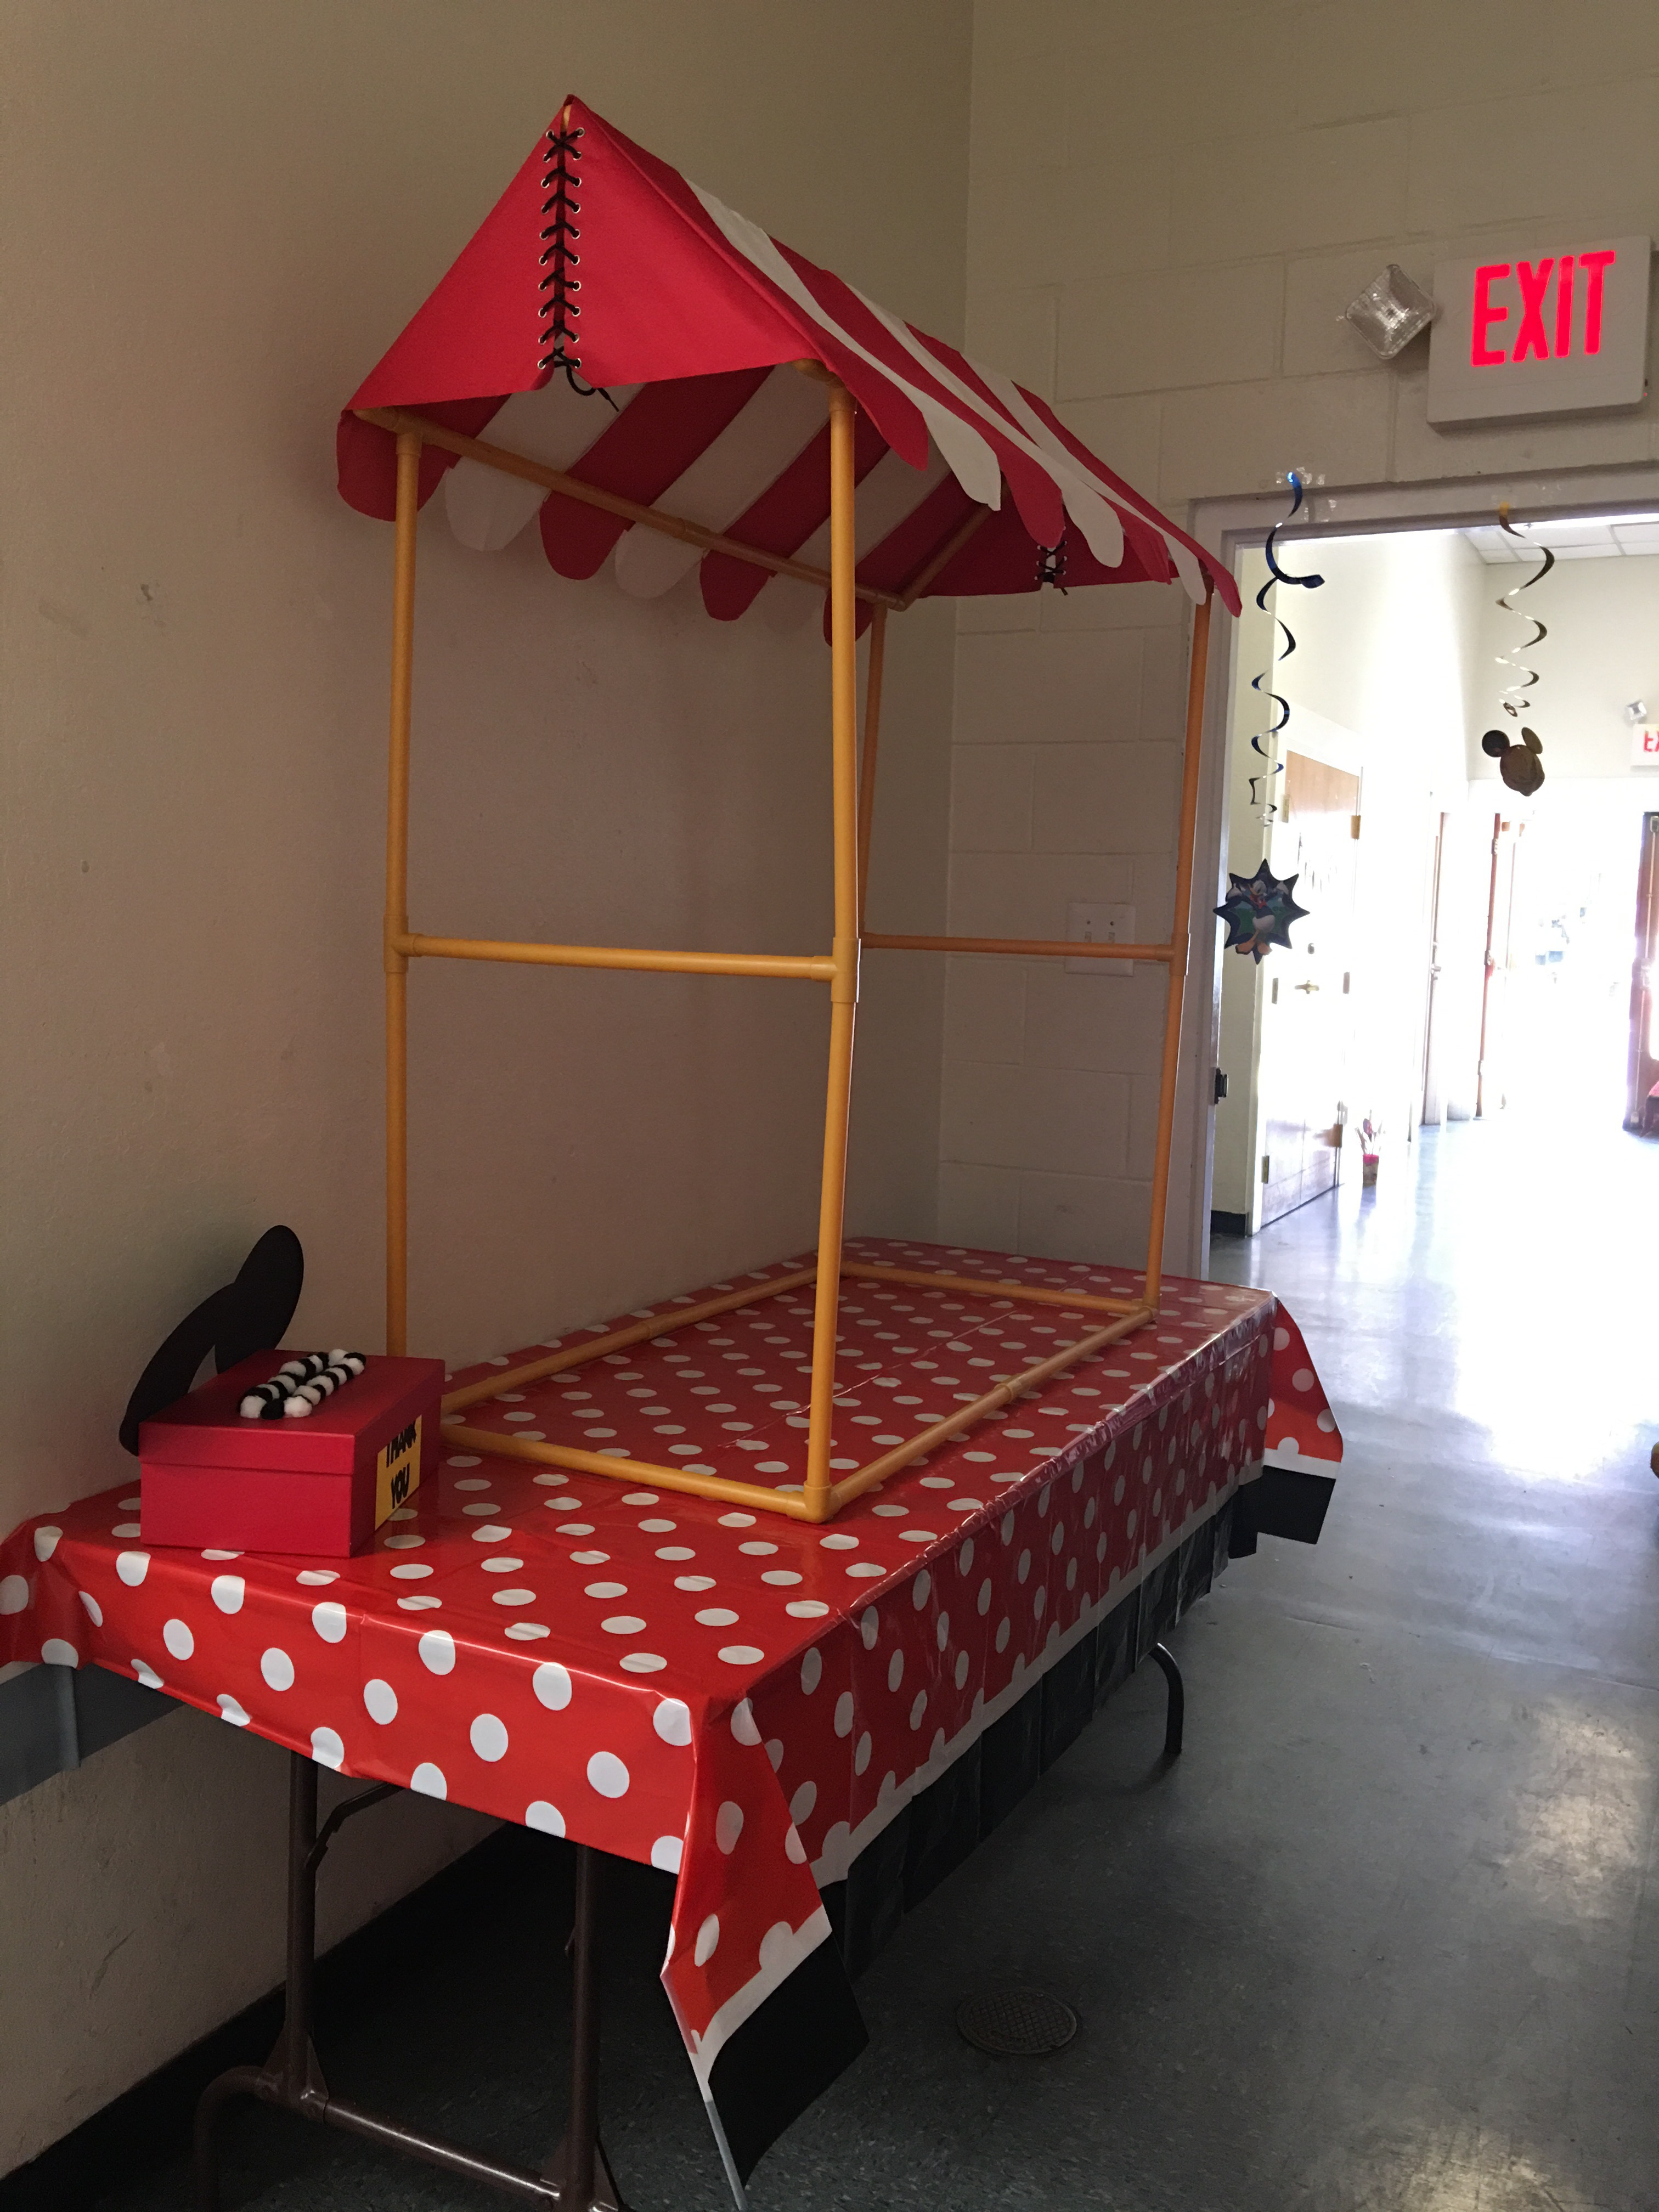 Big Top Table Tent | Table Cloth Target & Romeu0027s Mickey Mouse Birthday Party! | Inspire Her Action